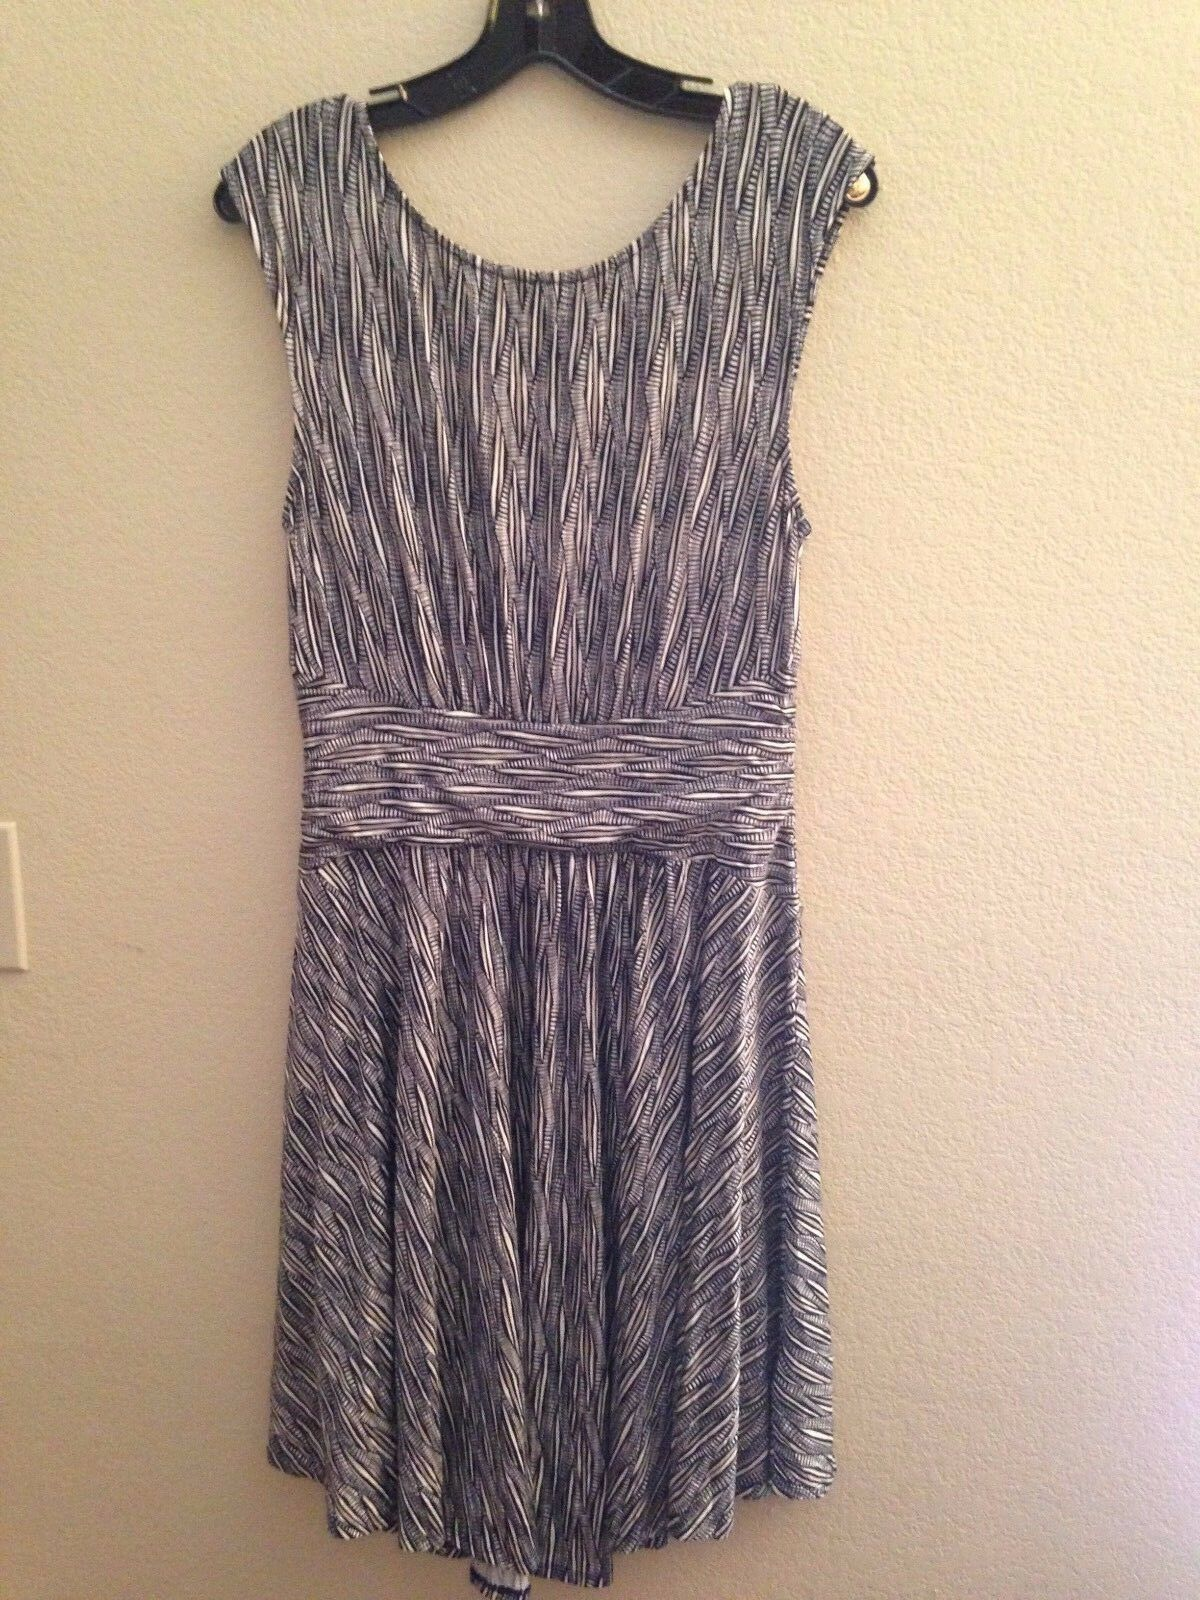 Anthropologie Moulinette Souers dress, Größe Medium, New with Tags